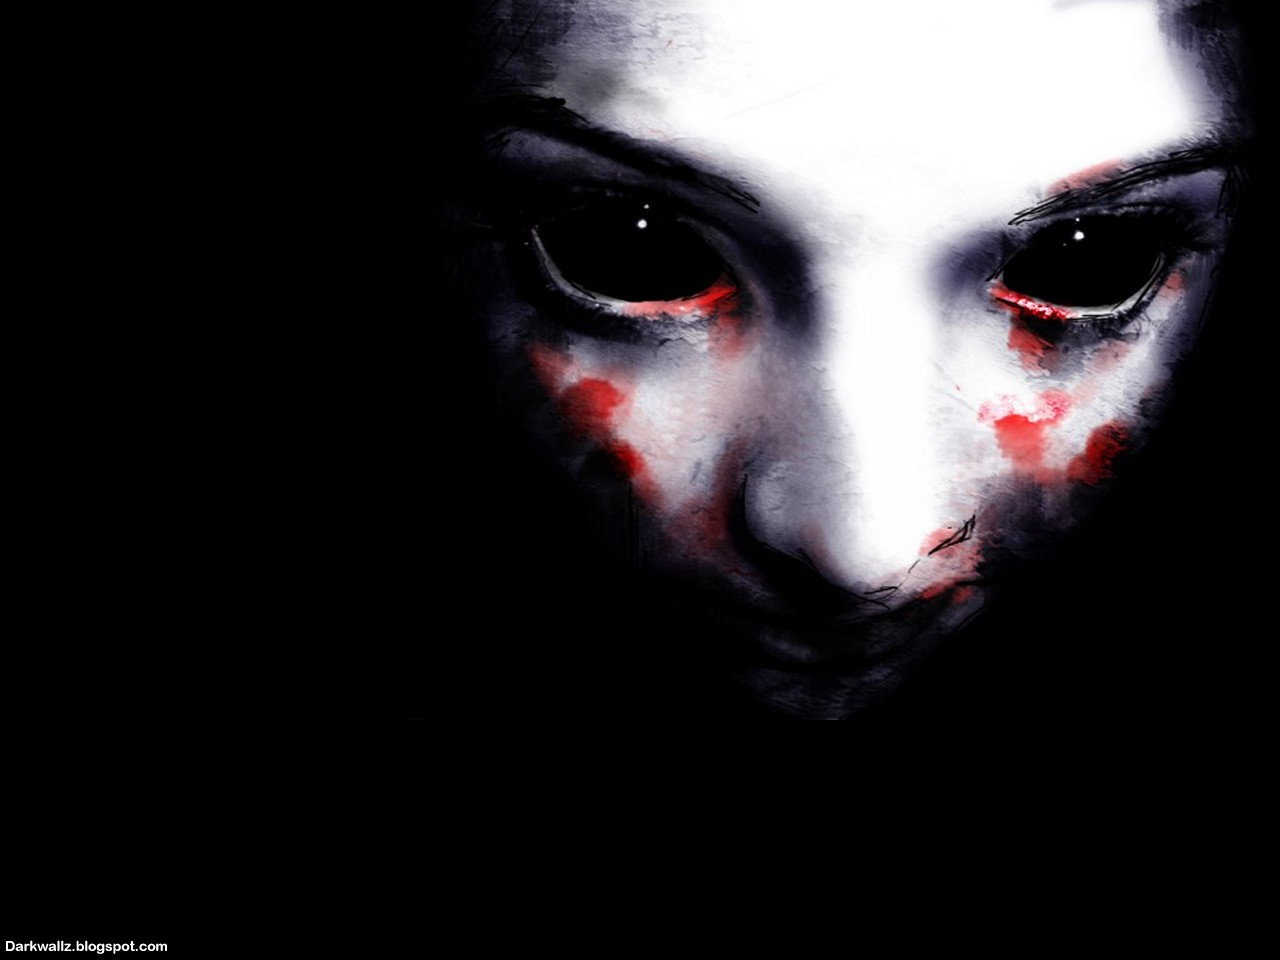 Scary Eyes Wallpapers 05 | Dark Wallpaper Download